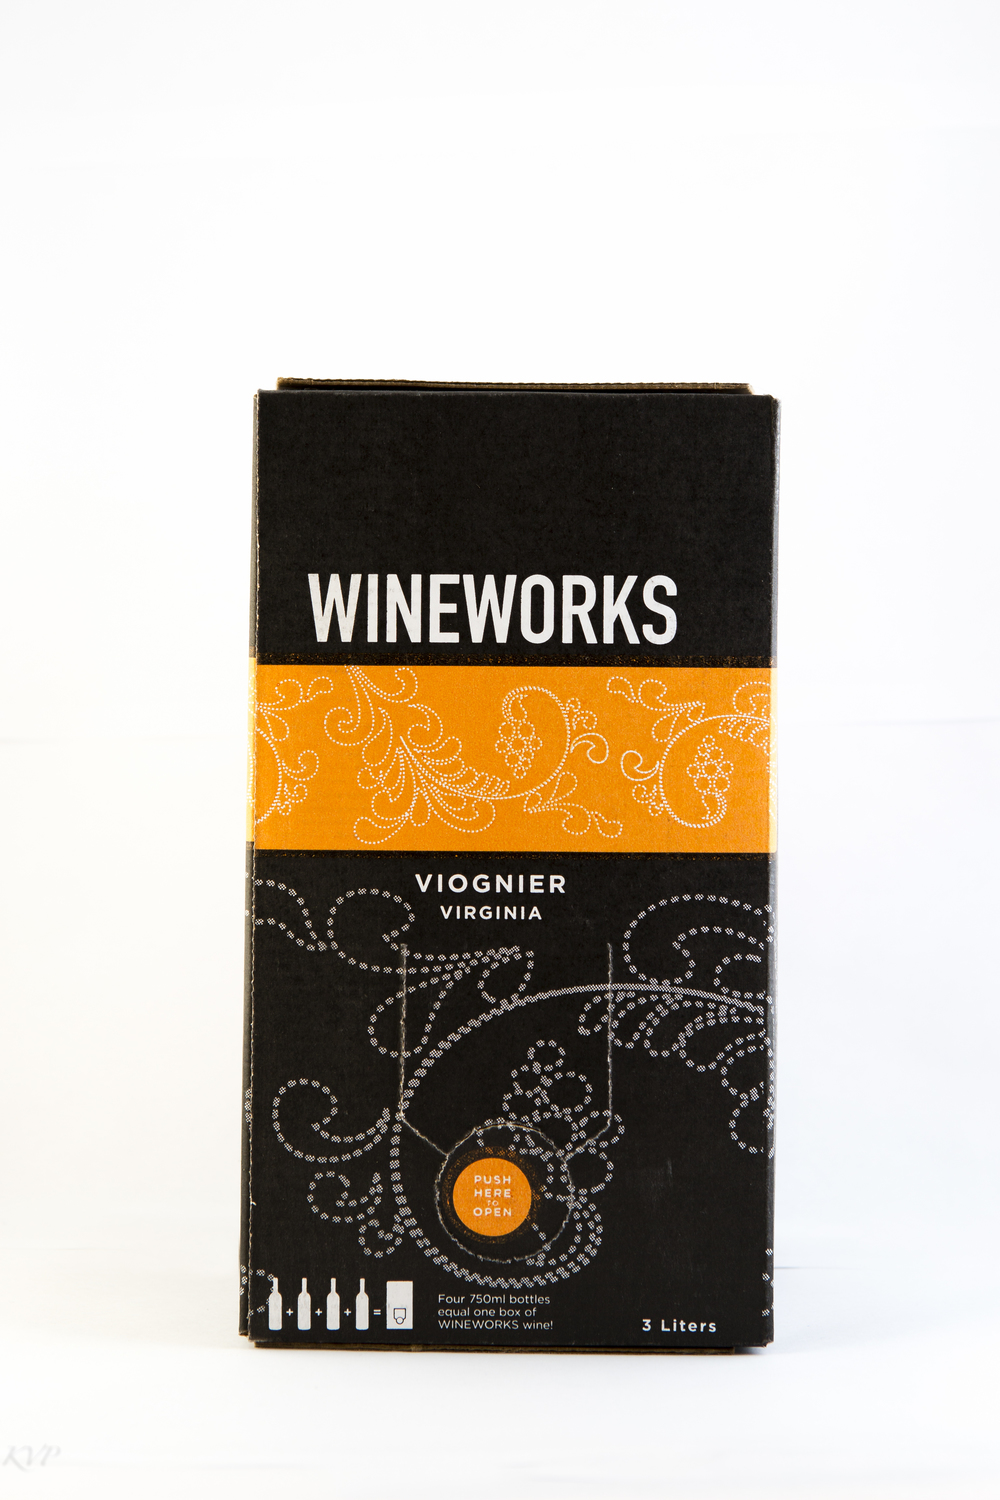 Wineworks Box Viognier $40 This wine, made with Virginia's famous Viognier grape, is fermented in a combination of stainless steel tanks and neutral barrels. It is classic Virginia Viognier: aromatic and round, with mouthwatering fruit character that finishes crisp and clean